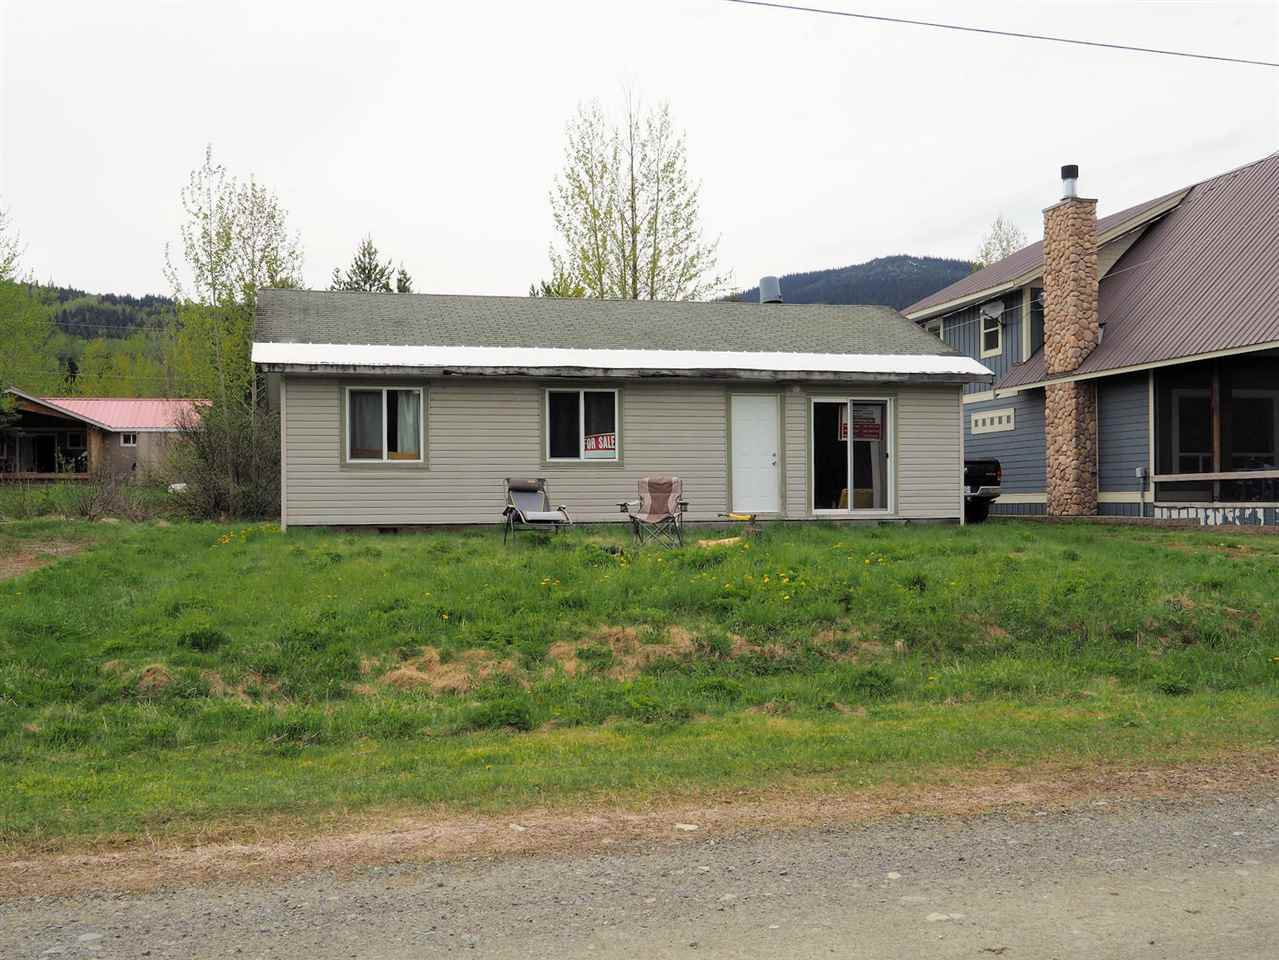 Main Photo: 653 A Road in Canim Lake: Canim/Mahood Lake House for sale (100 Mile House (Zone 10))  : MLS®# R2458176